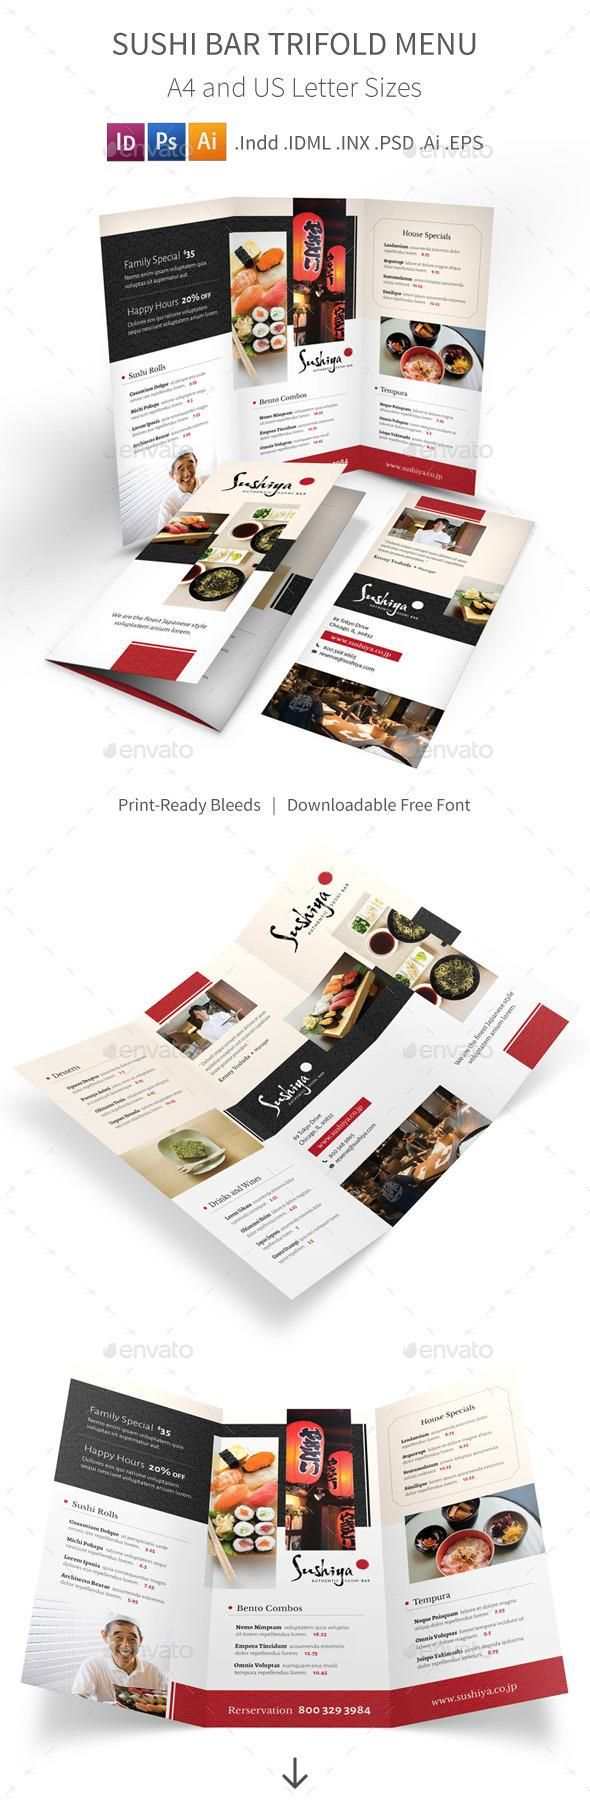 Sushi Bar Trifold Menu